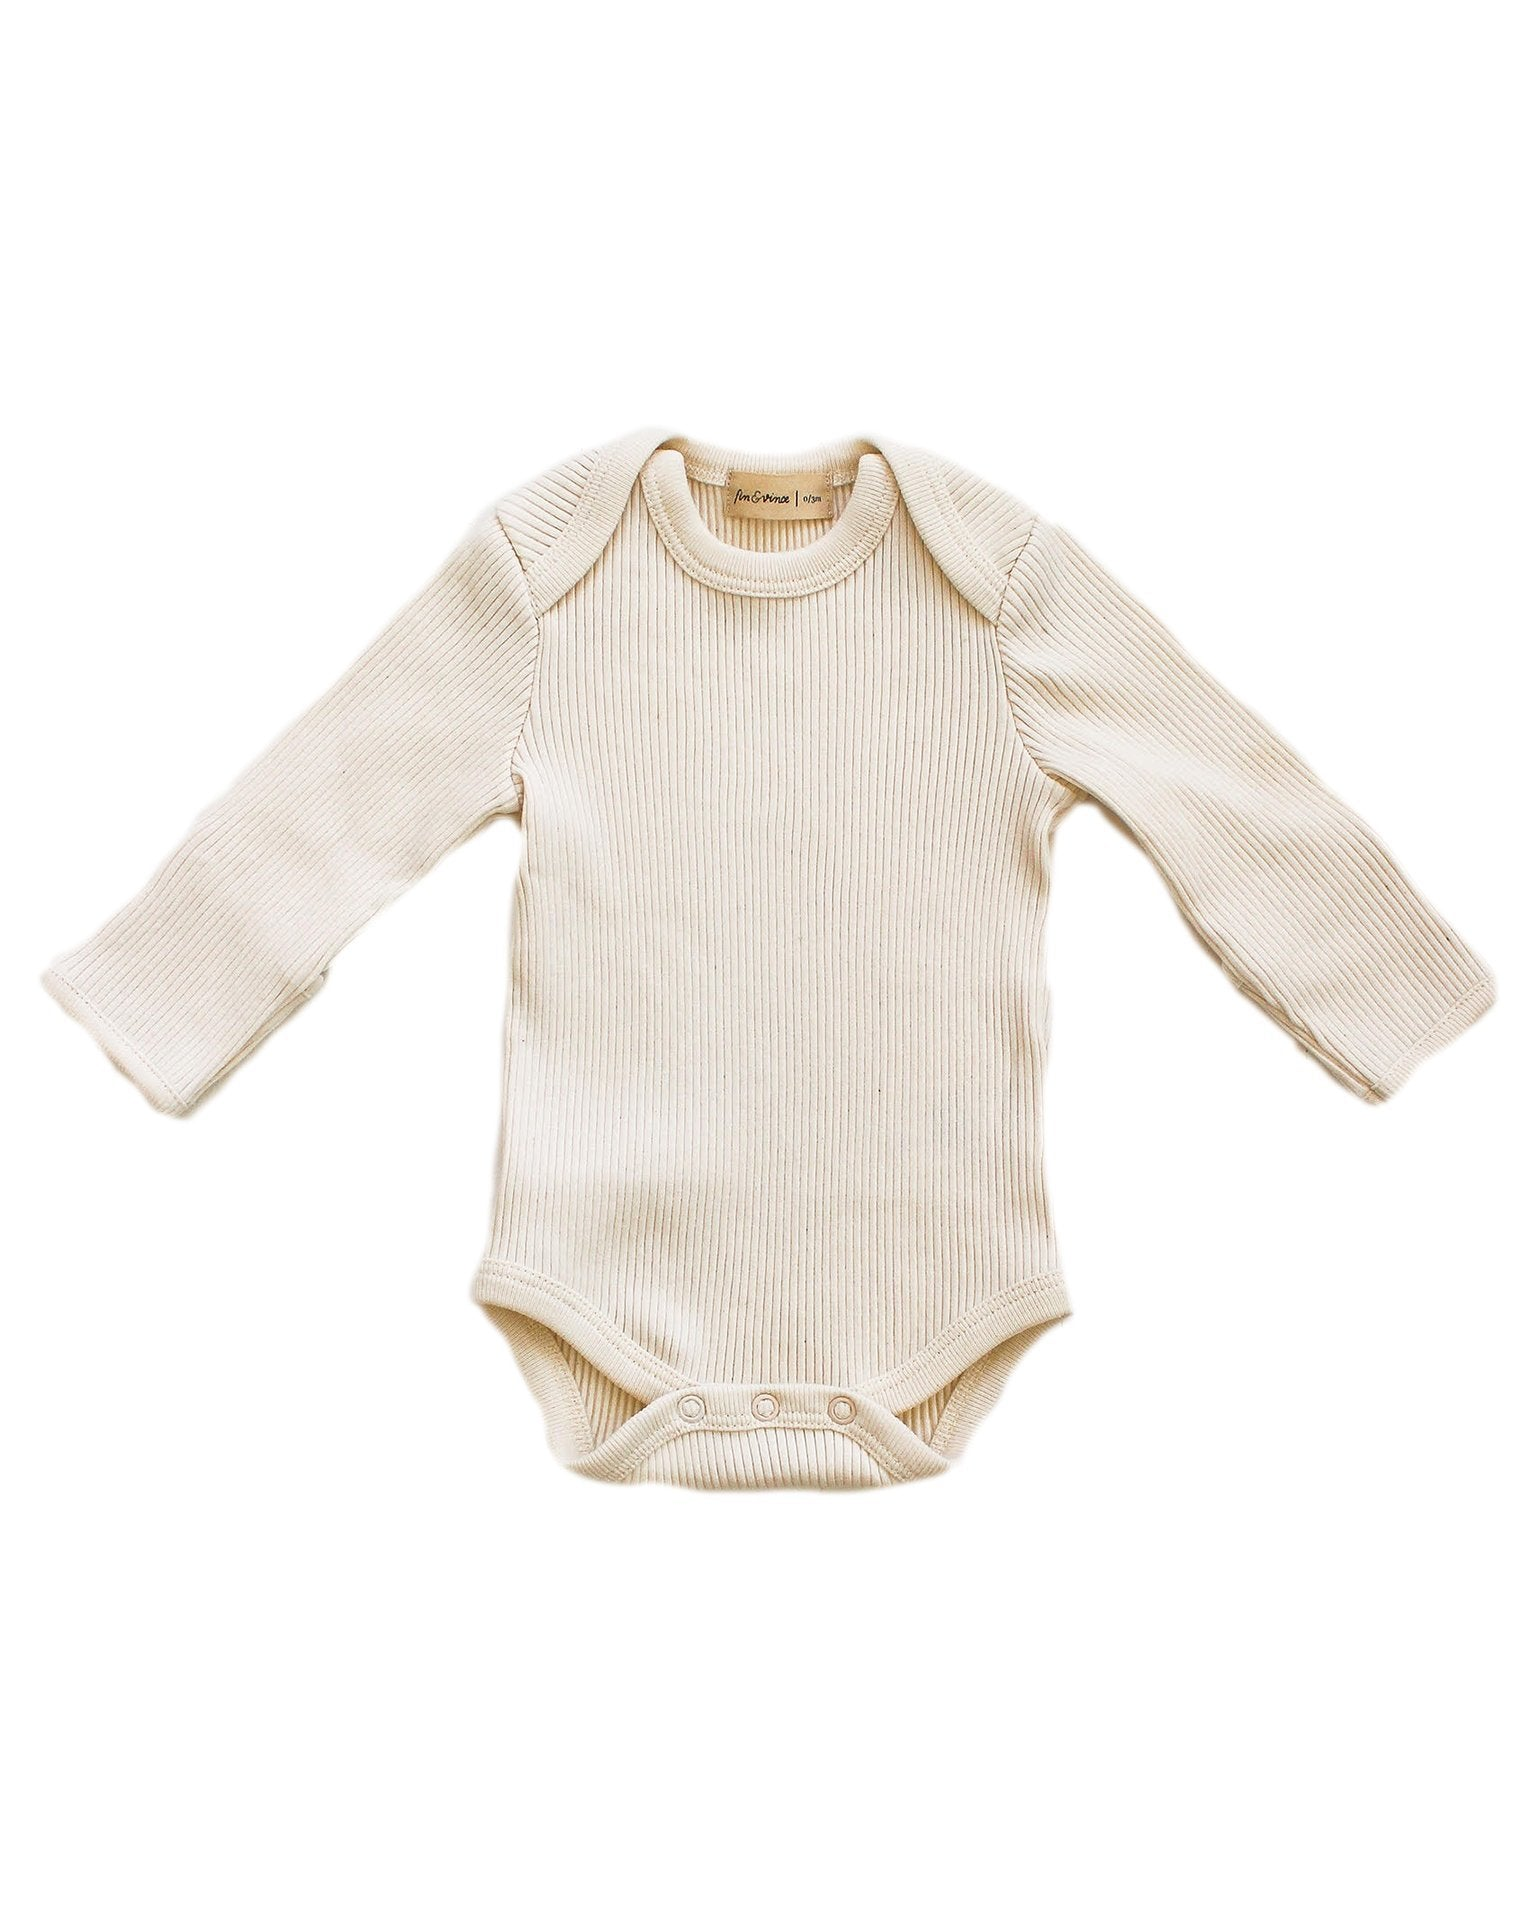 Little fin + vince layette long sleeve onesie in vanilla